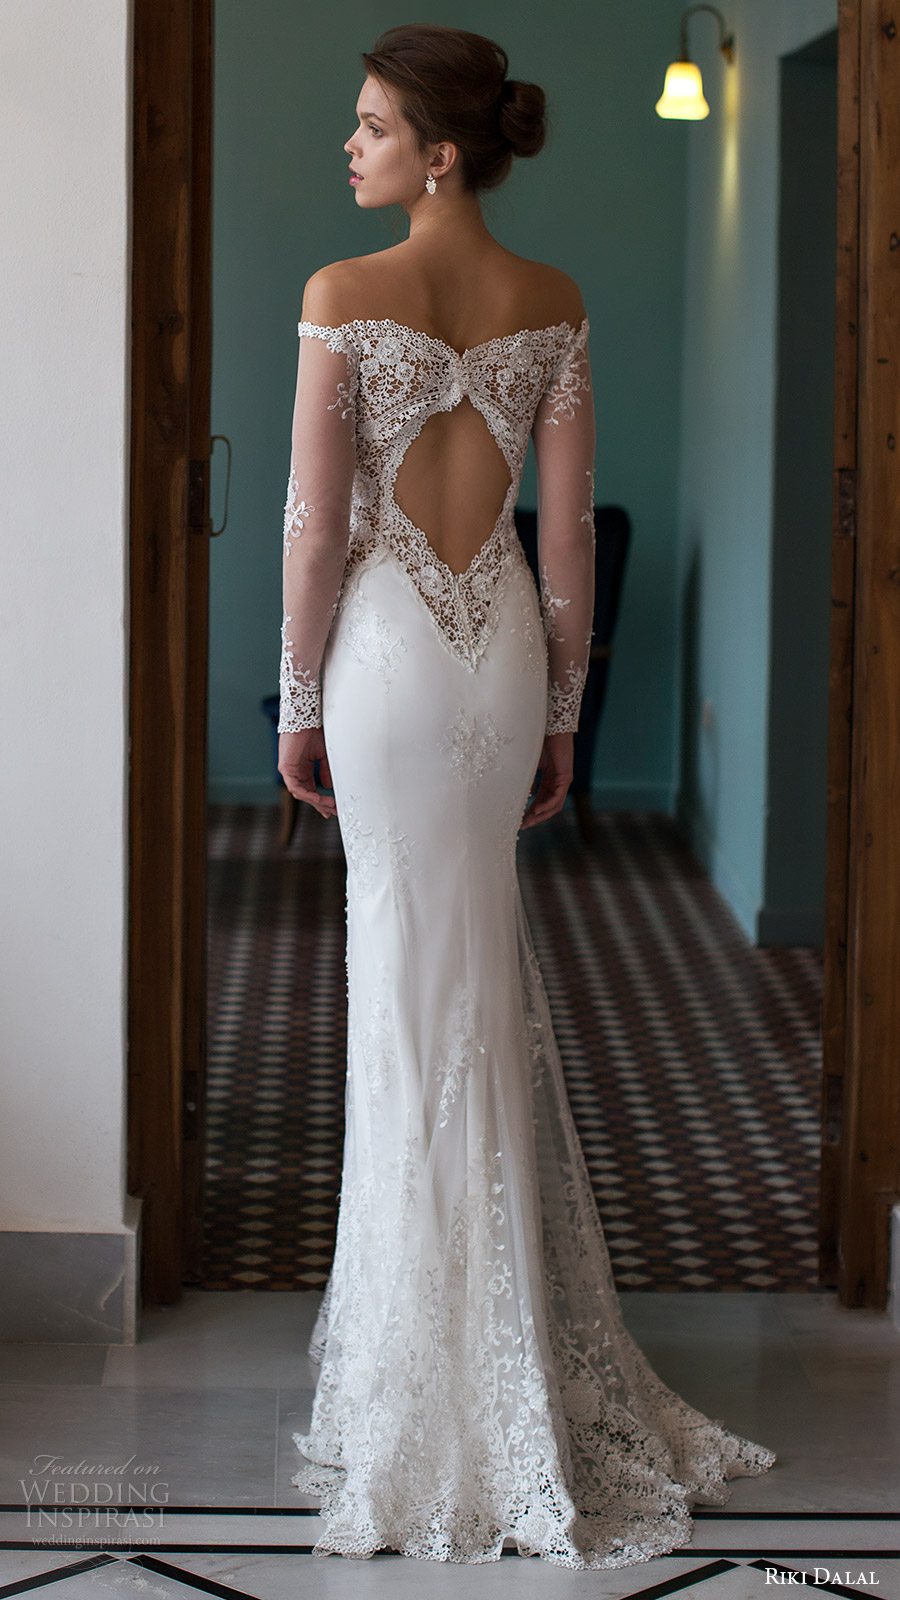 Riki Dalal 2016 Wedding Dresses